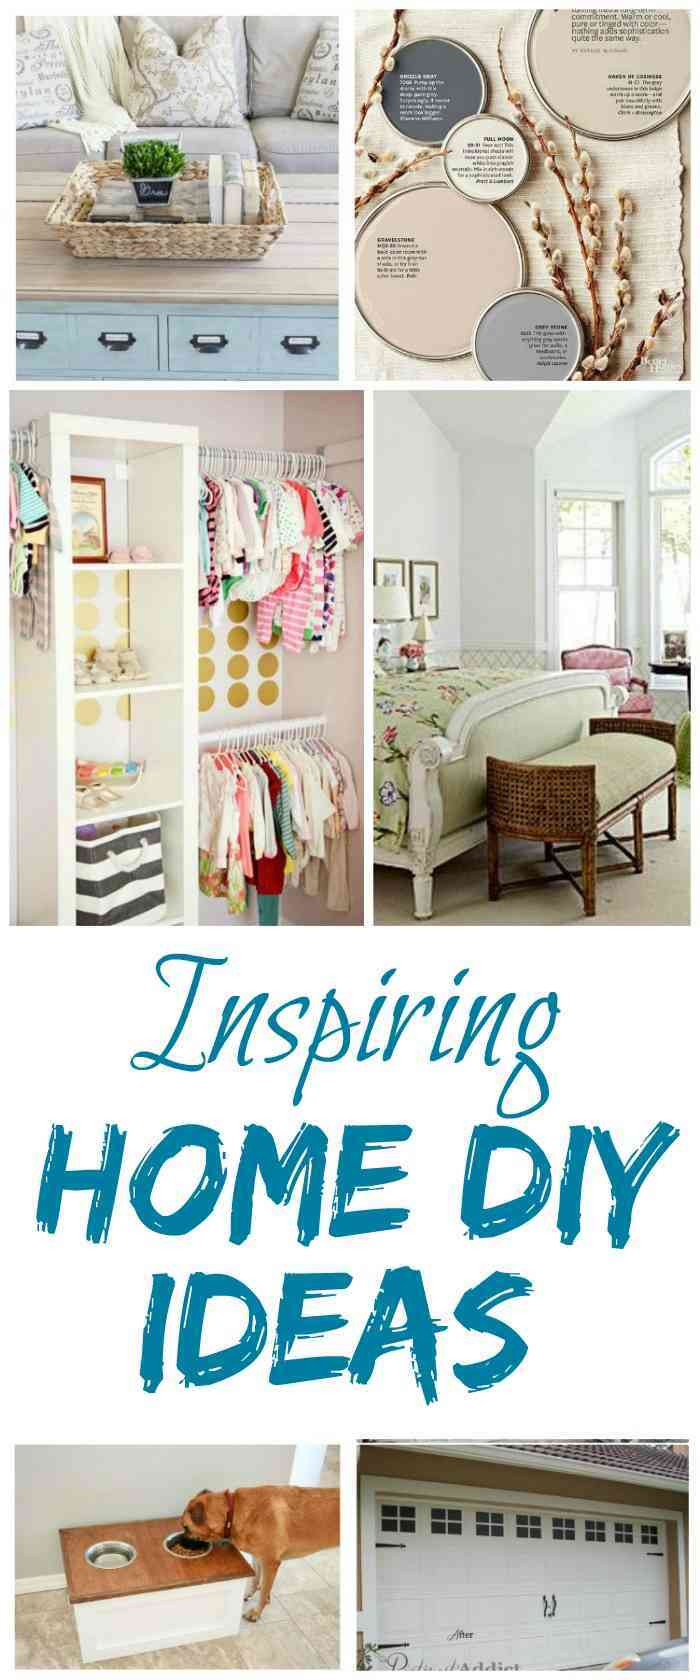 Inspiring DIY Home Decor Ideas | The Mindful Shopper